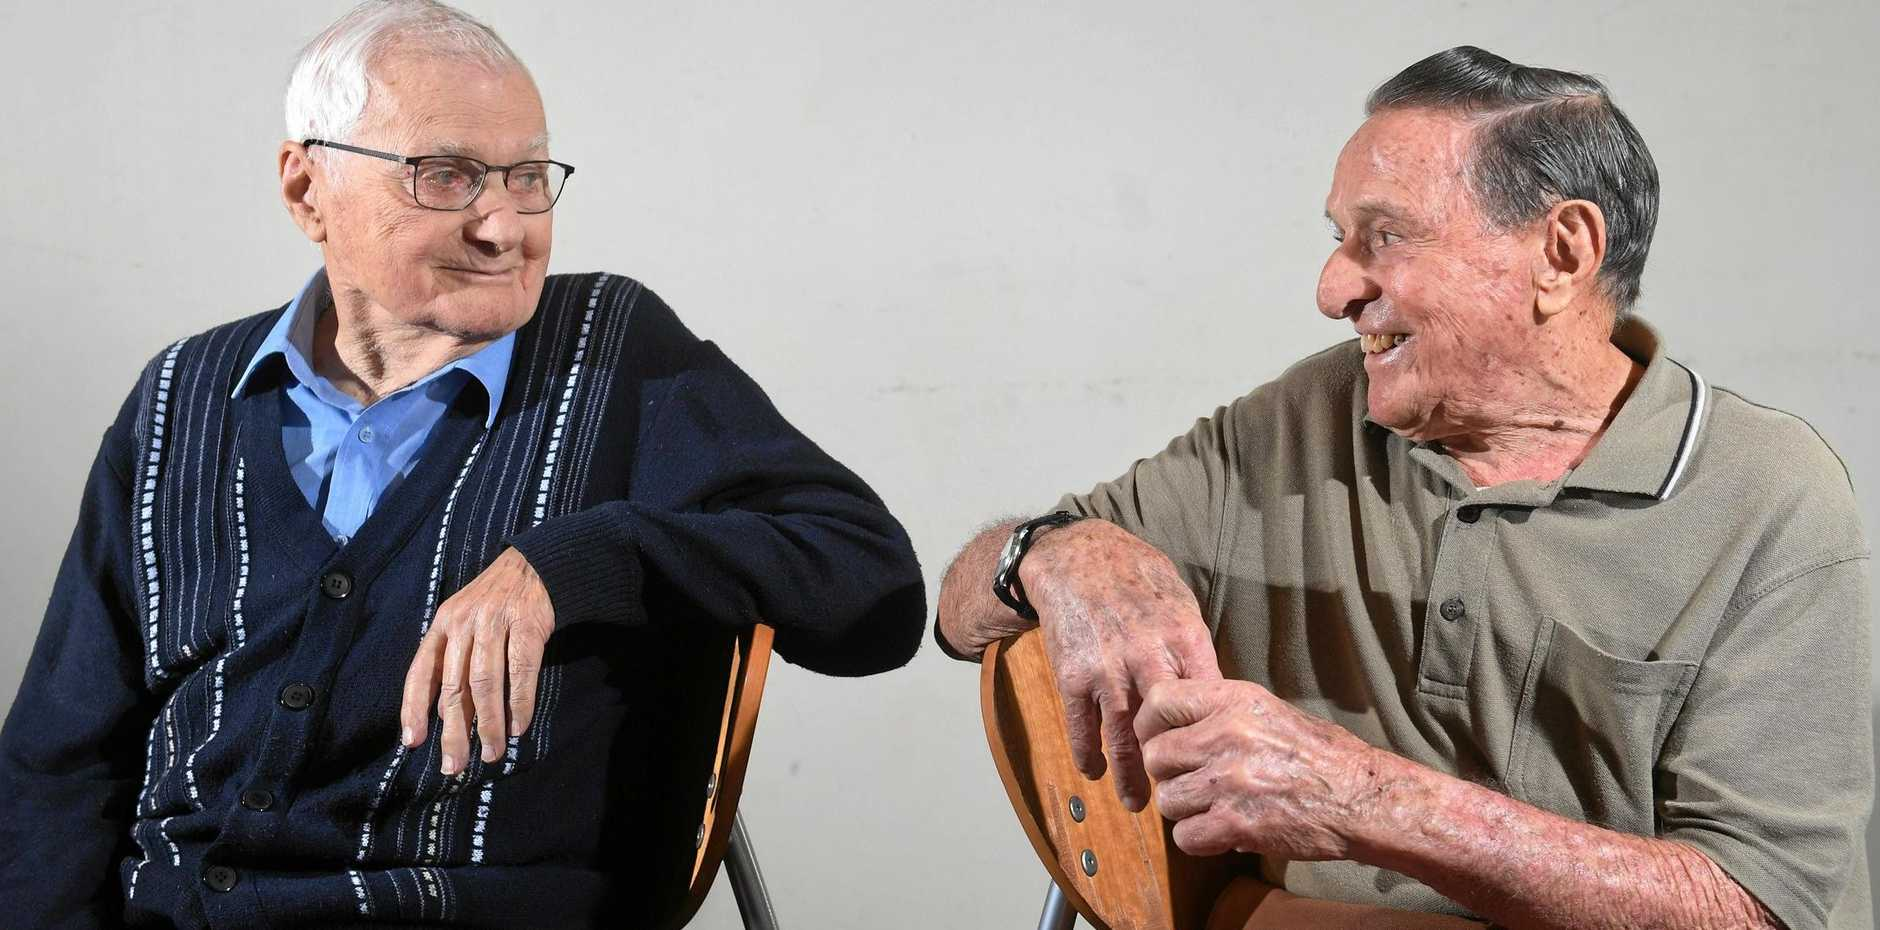 SURPRISE MEETING: The men who share the same birthday, Grant Virtue and Gerald Olivieri, both 90, met recently.